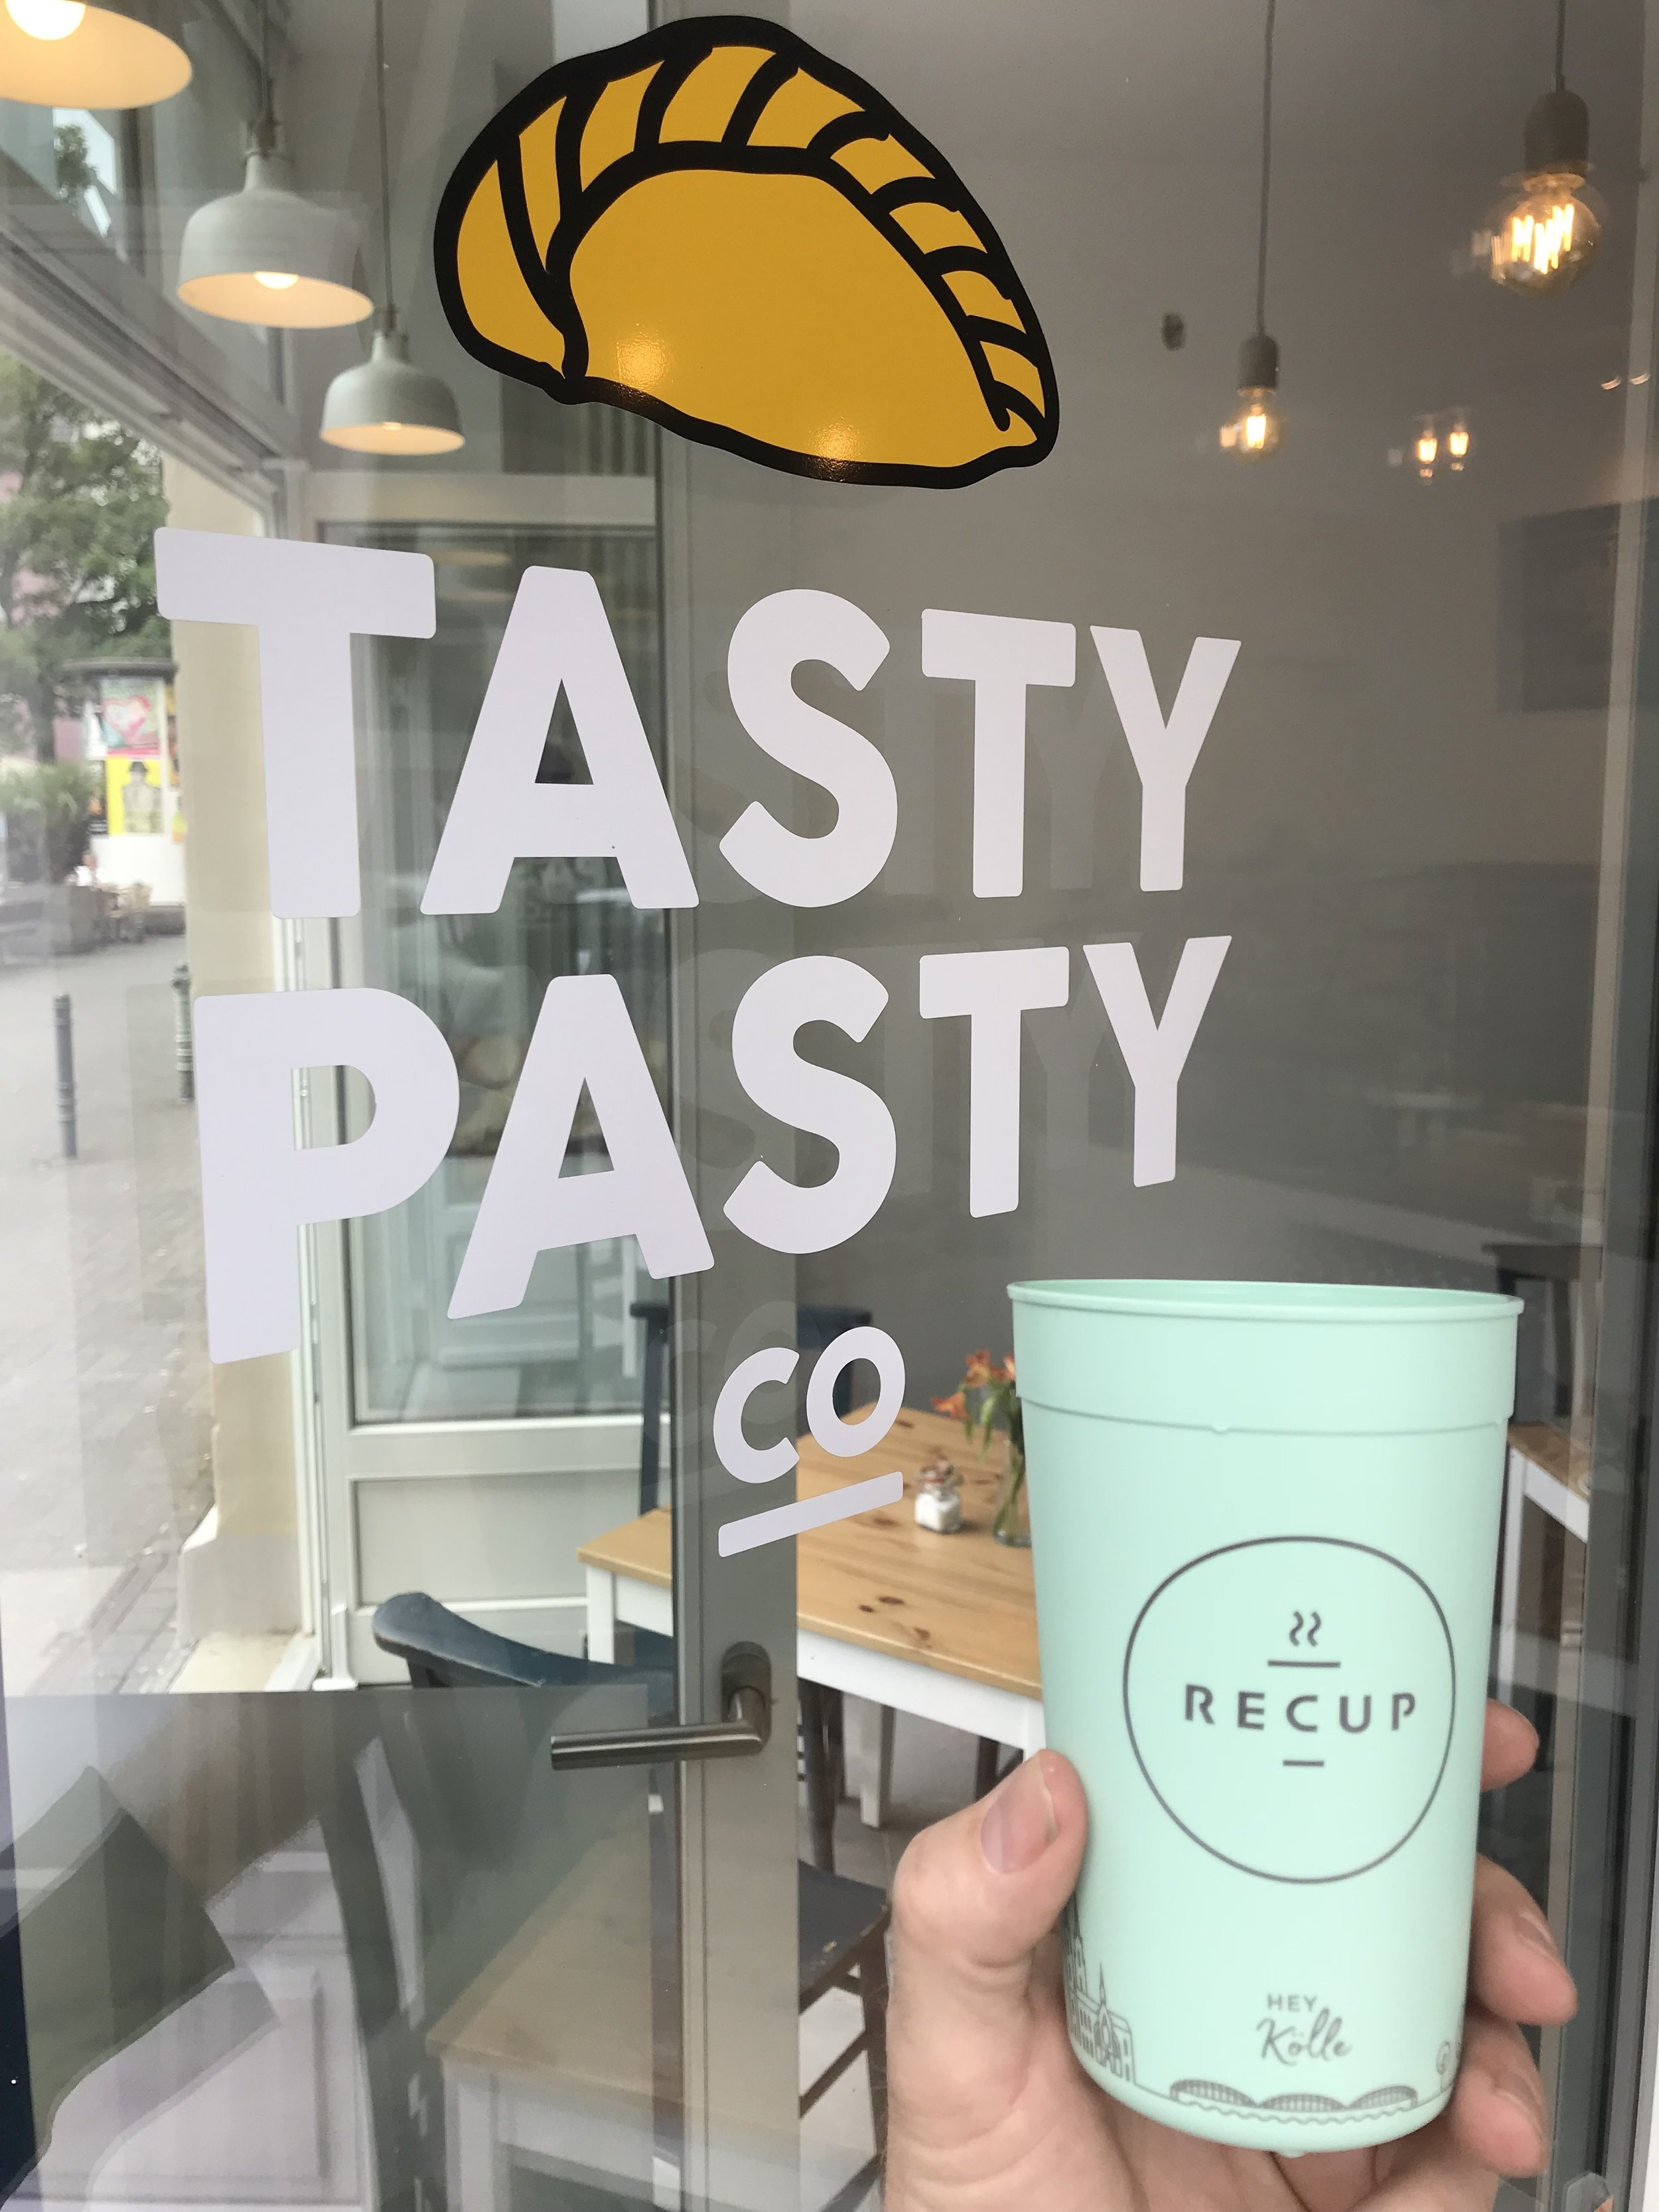 We have RECUP! - So take your drinks away without the guilt of using throwaway paper cups.